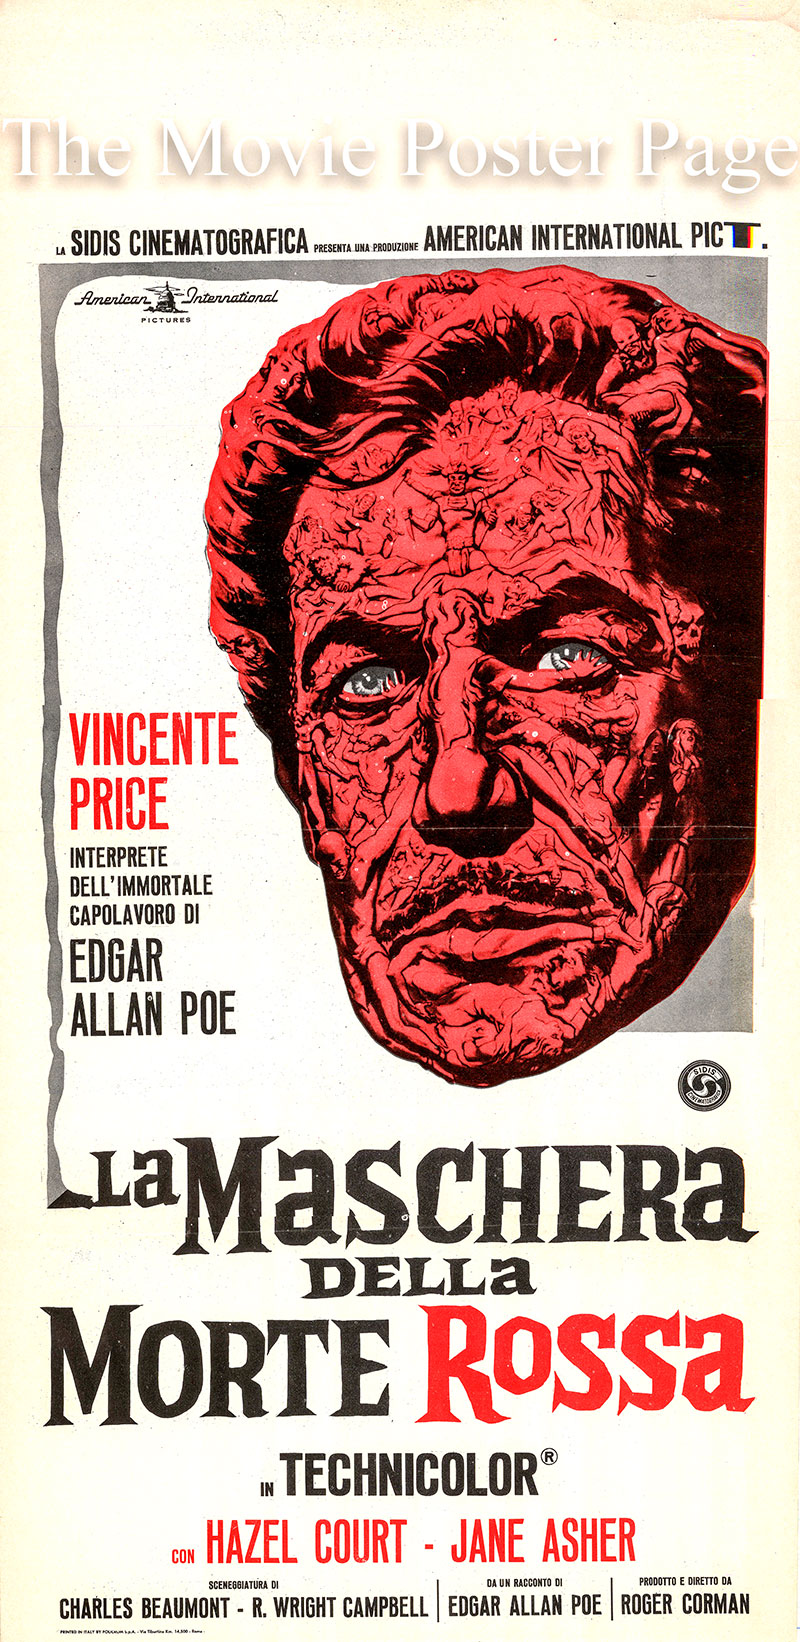 Pictured is a Italian locandina promotional poster for the 1964 Roger Corman film The Masque of the Red Death starring Vincent Price as Prince Prospero.